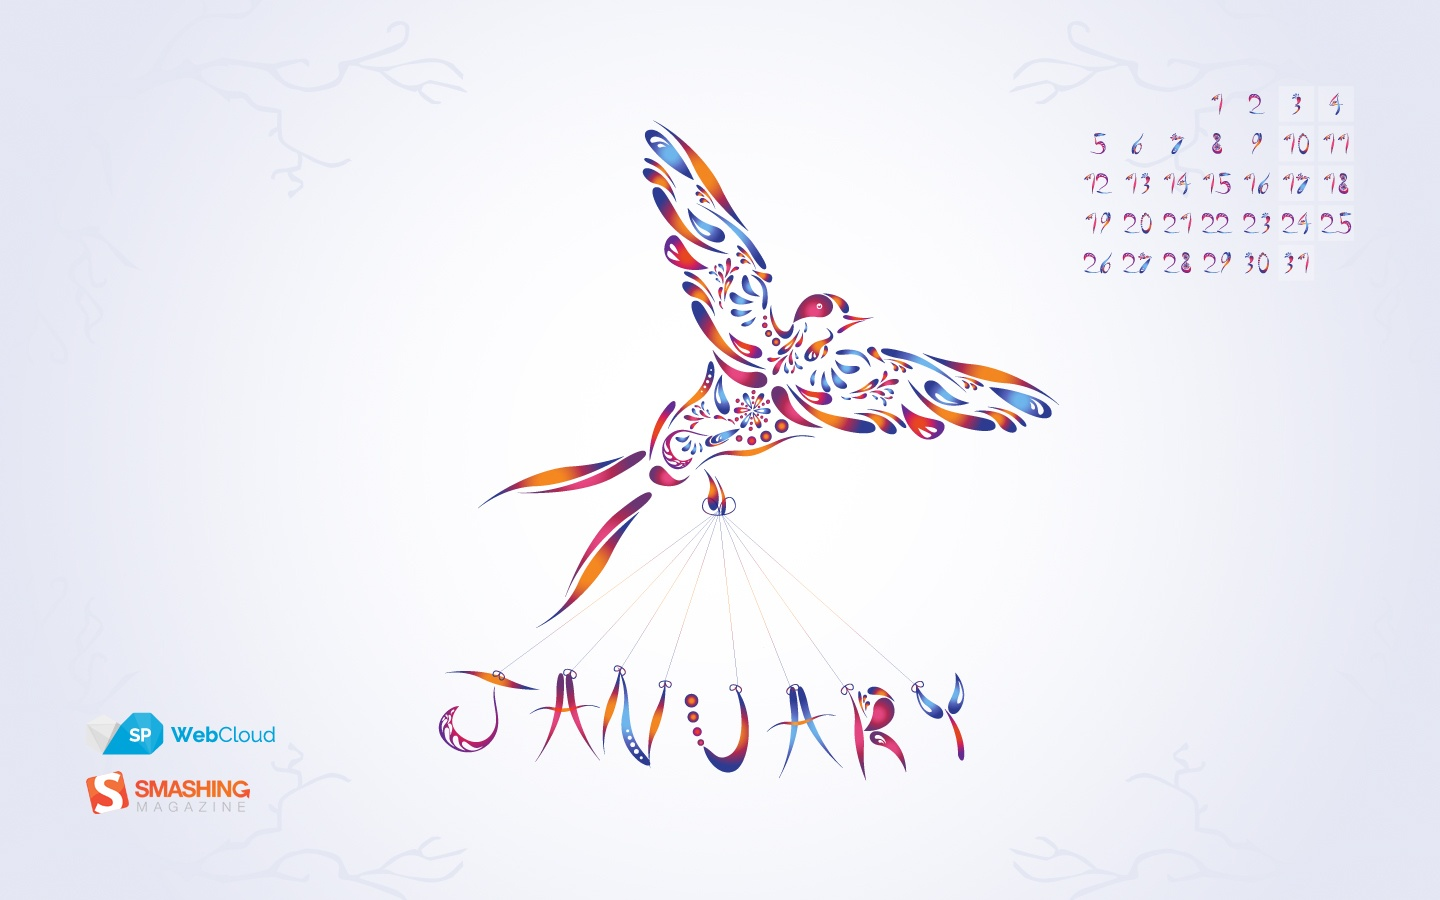 In January Calendar Wallpaper 51342